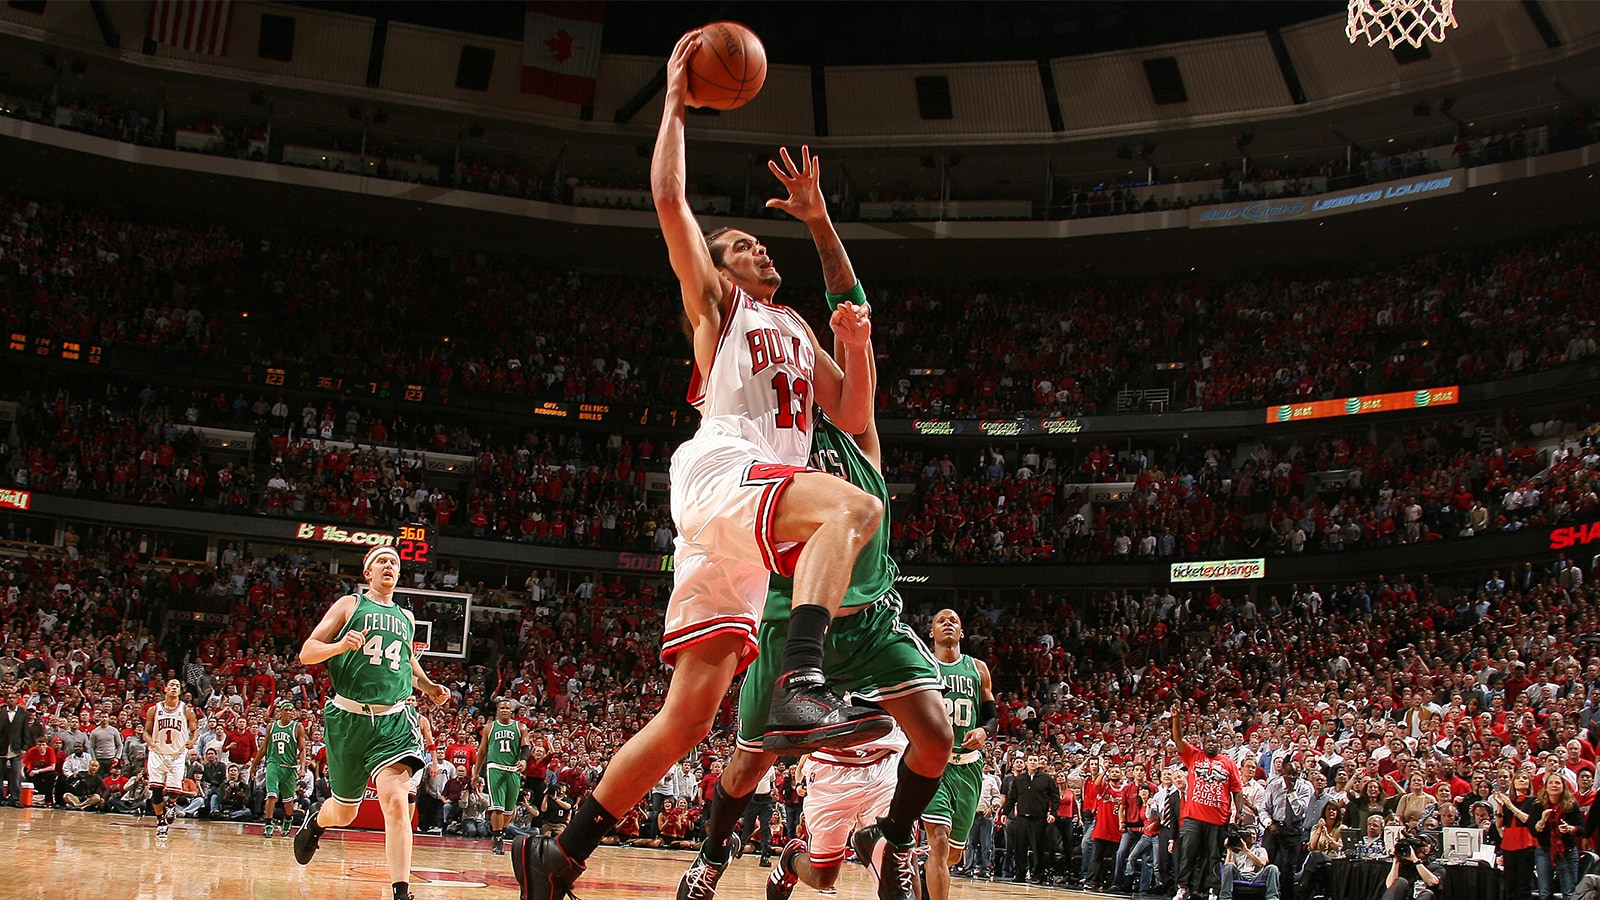 92c4475577f Joakim Noah of the Chicago Bulls dunks against the Boston Celtics in the  2009 Playoffs.